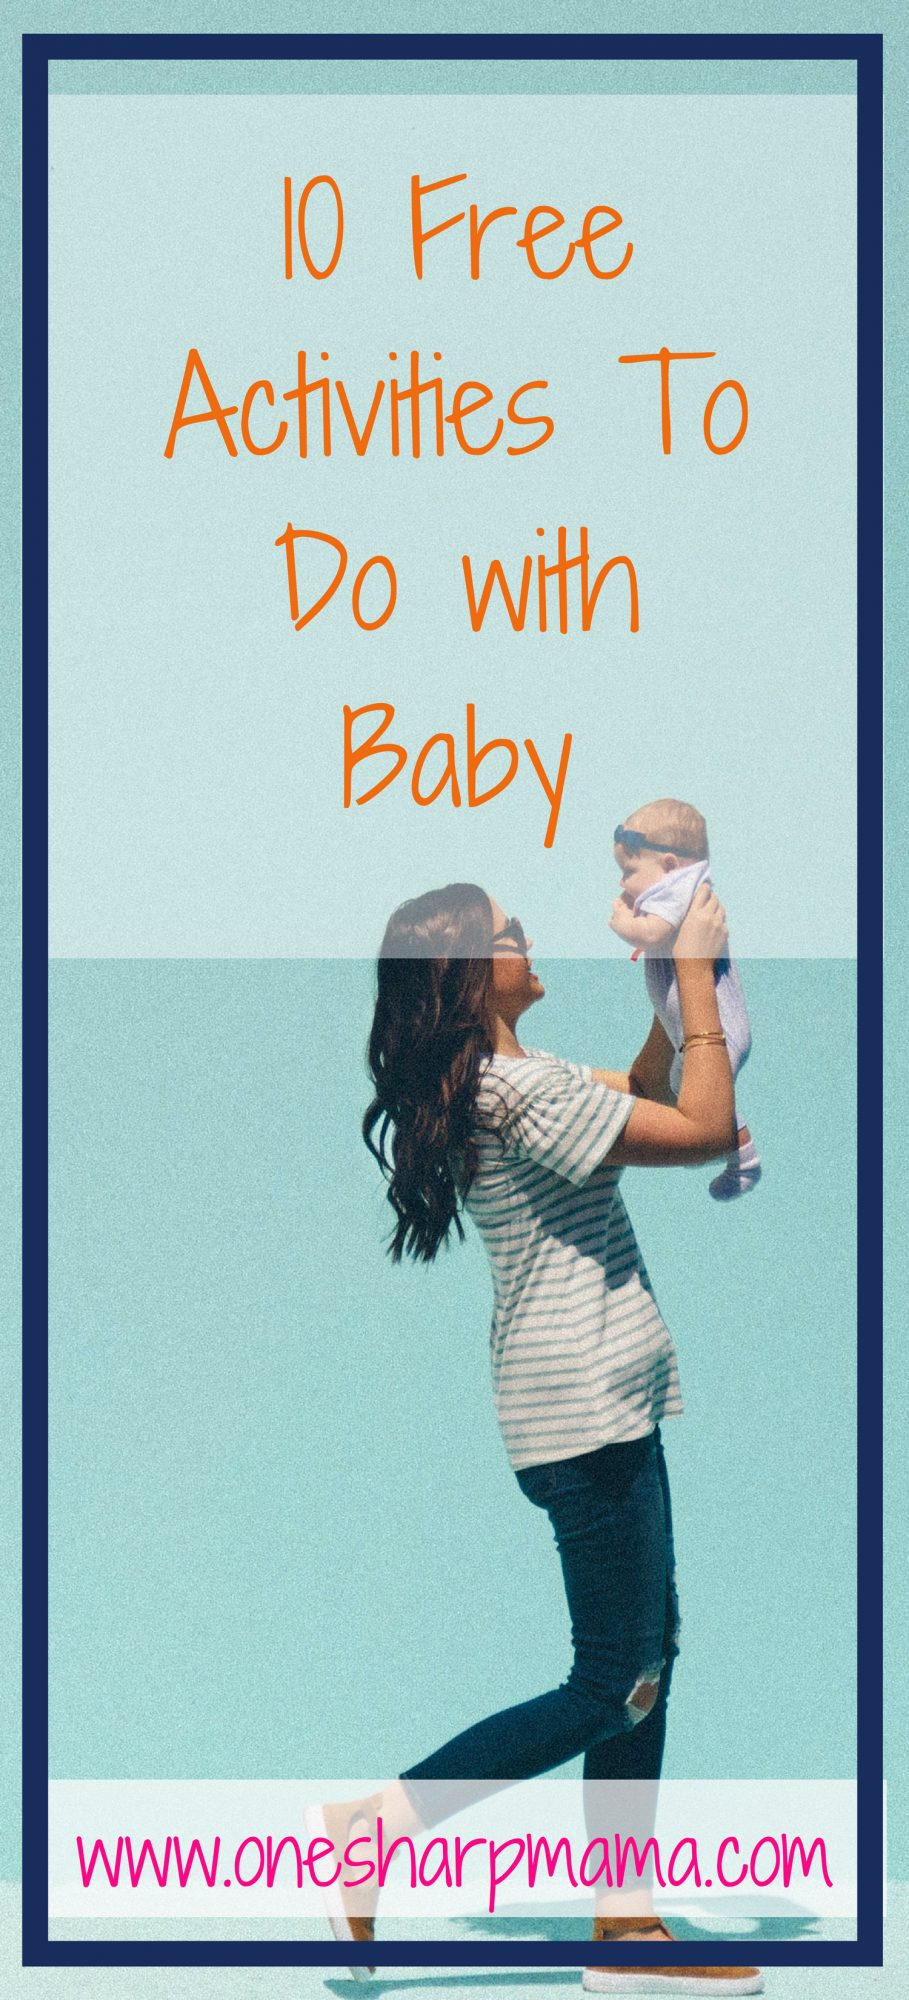 10 Free Activities to do with a Baby